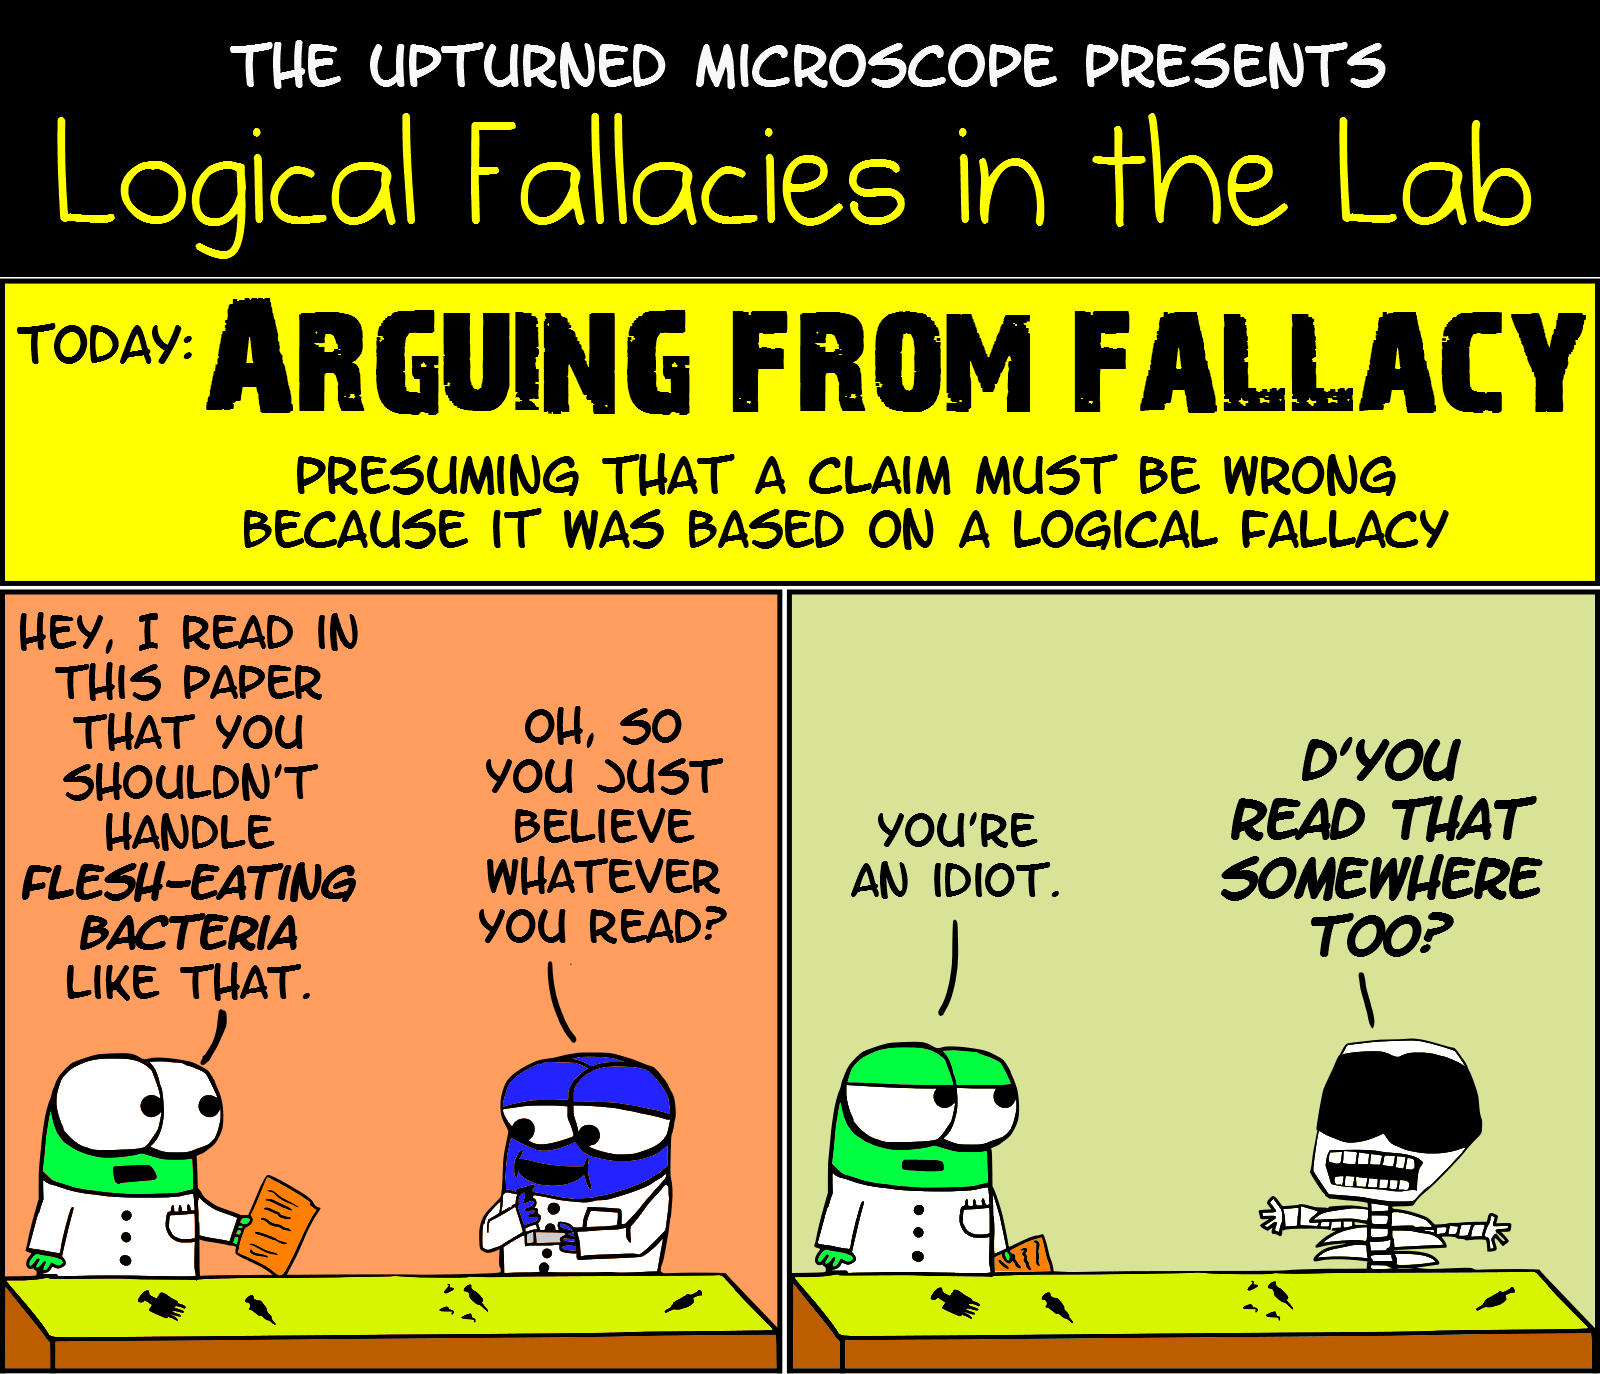 Logical Fallacies: Arguing from fallacy | The Upturned ...